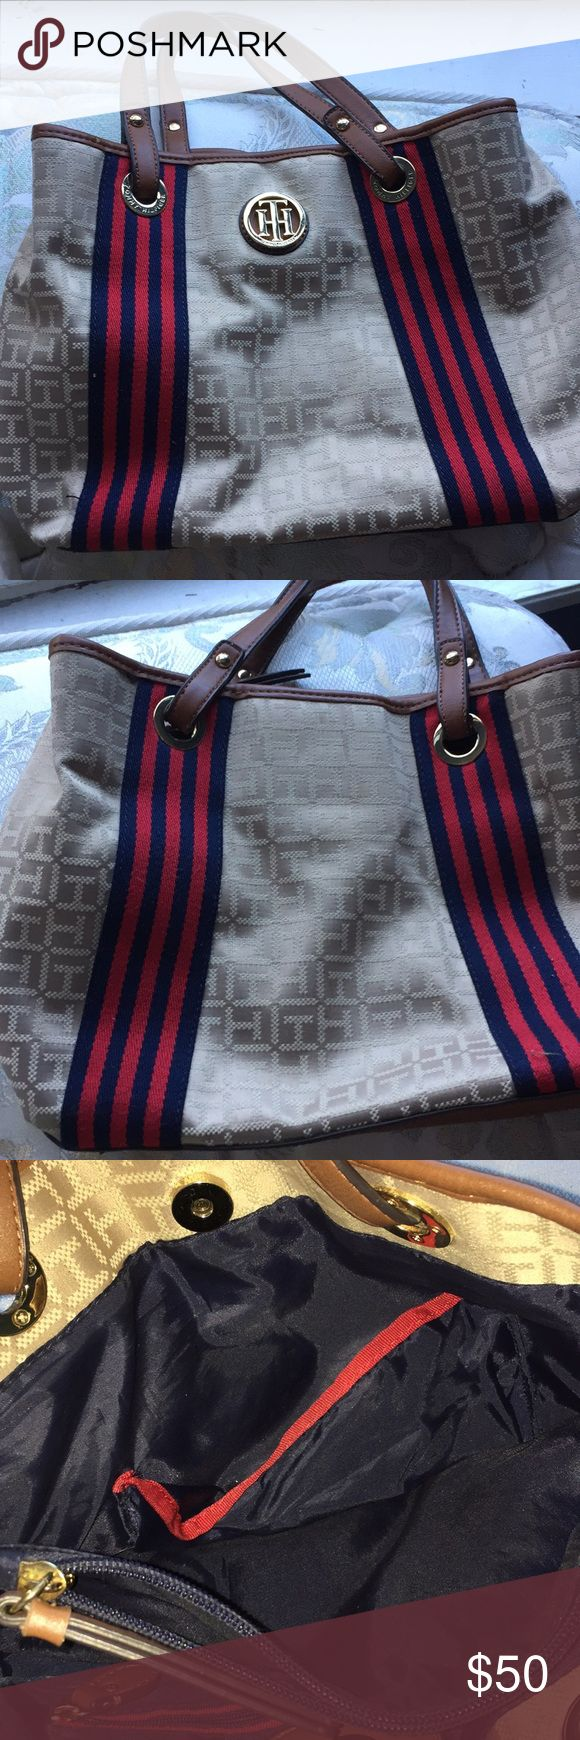 Authentic Brown and Red Tommy Hilfiger Purse This is a completely real Tommy Hilfiger purse. Very clean, NO stains, but one mark on the top. Tommy Hilfiger Bags Travel Bags